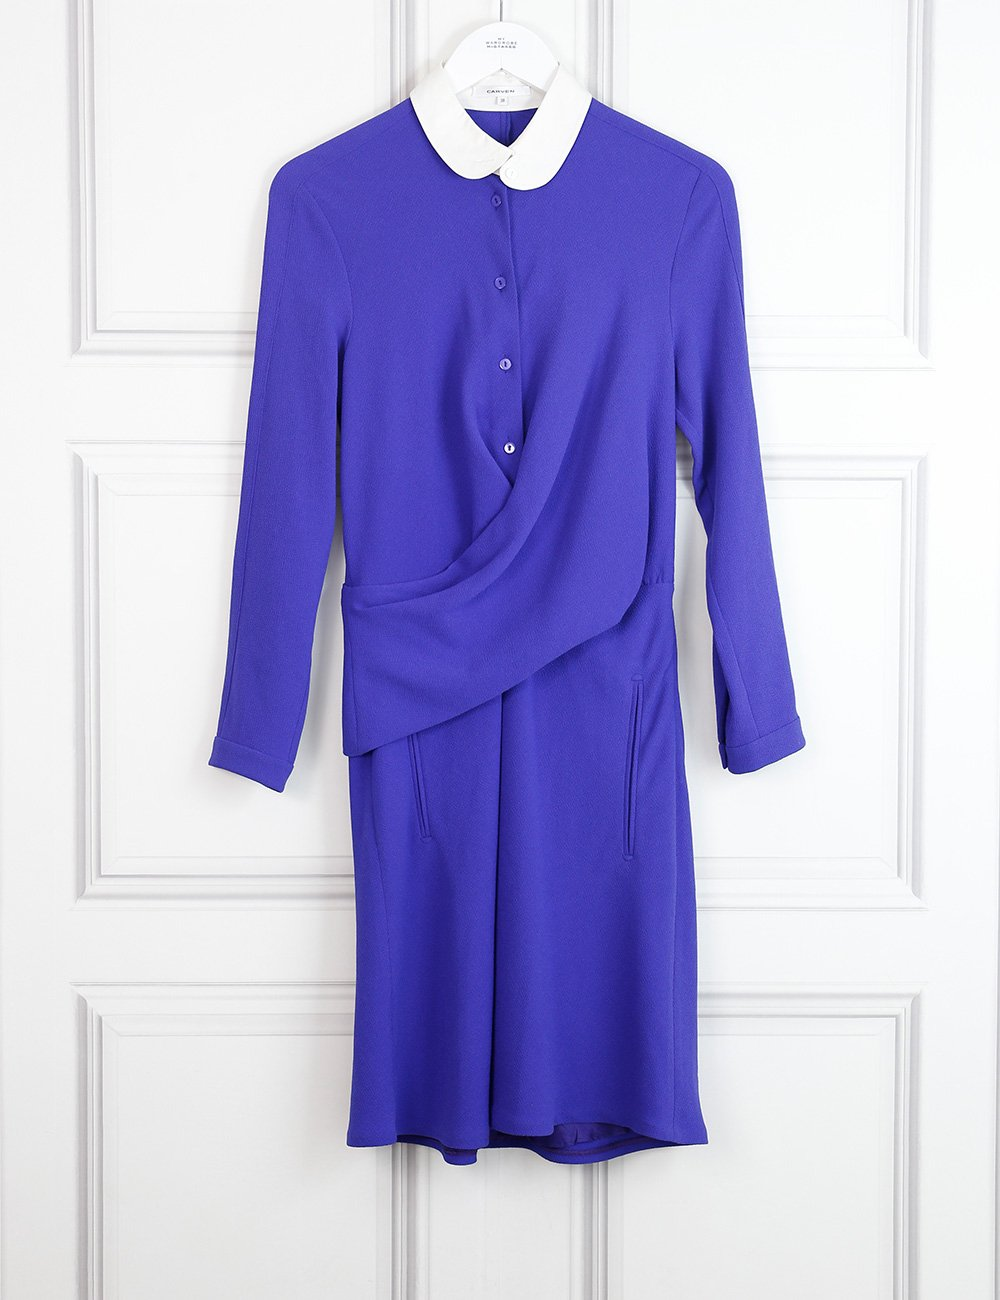 Carven purple dress with contrasting collar 10UK- My Wardrobe Mistakes